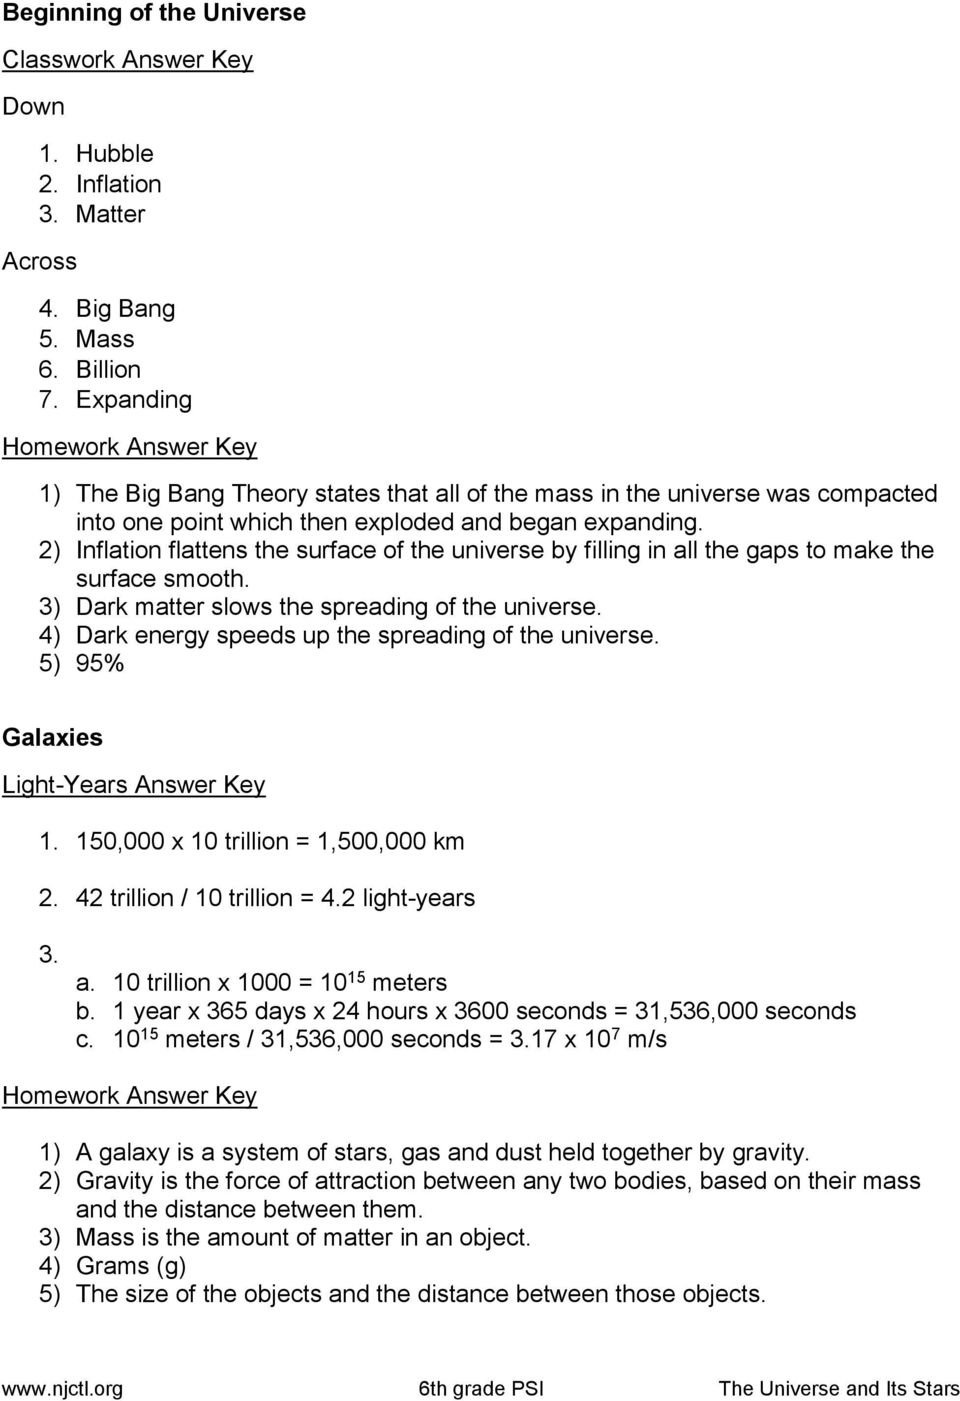 hight resolution of Beginning of the Universe Classwork 6 th Grade PSI Science - PDF Free  Download